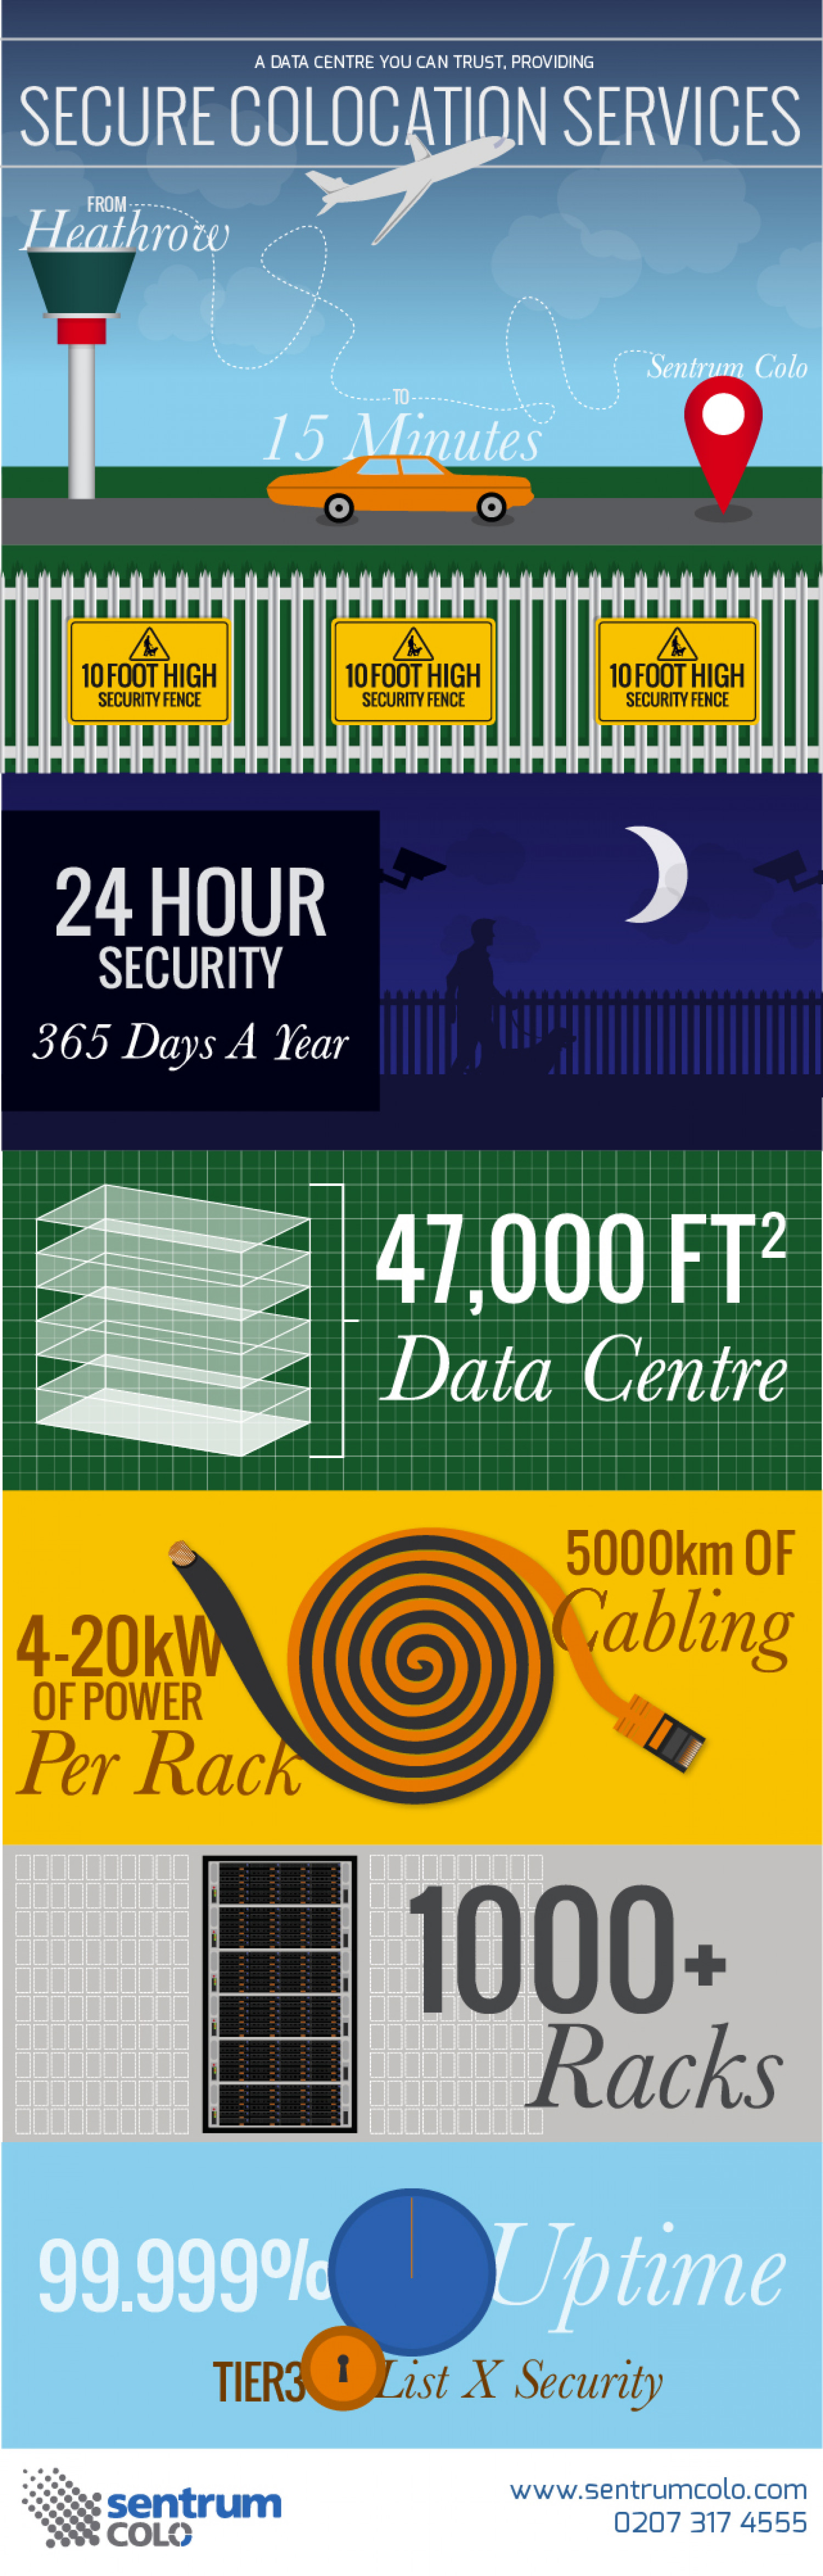 Secure Colocation Services Infographic